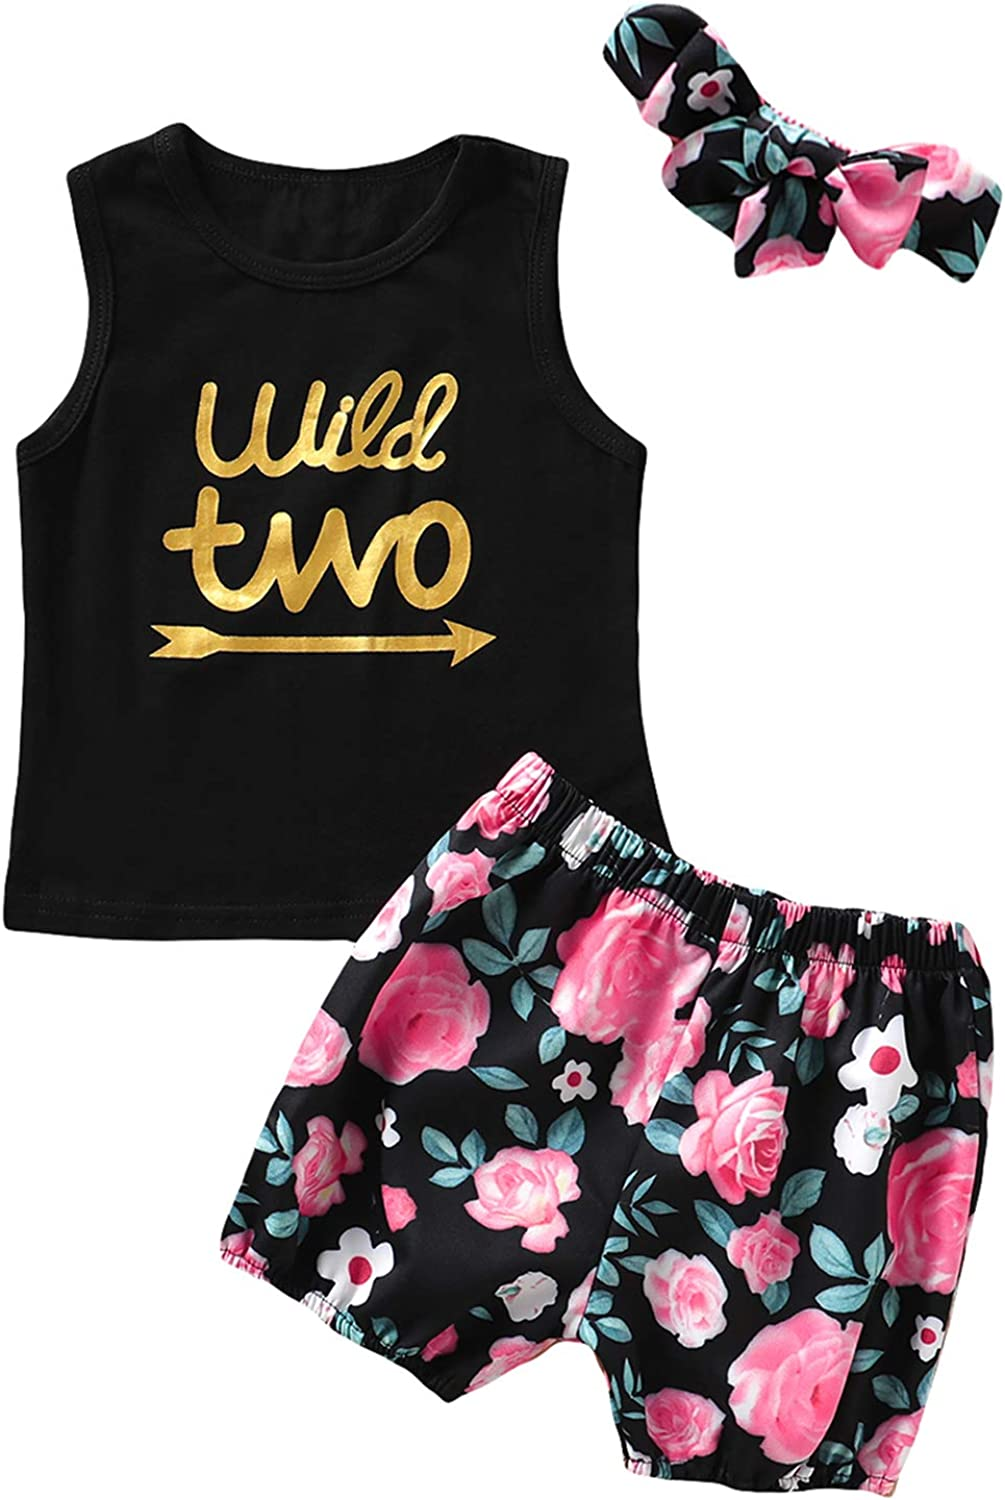 Little Girls Floral Outfit Set Wild Two Vest Short Set with Headband